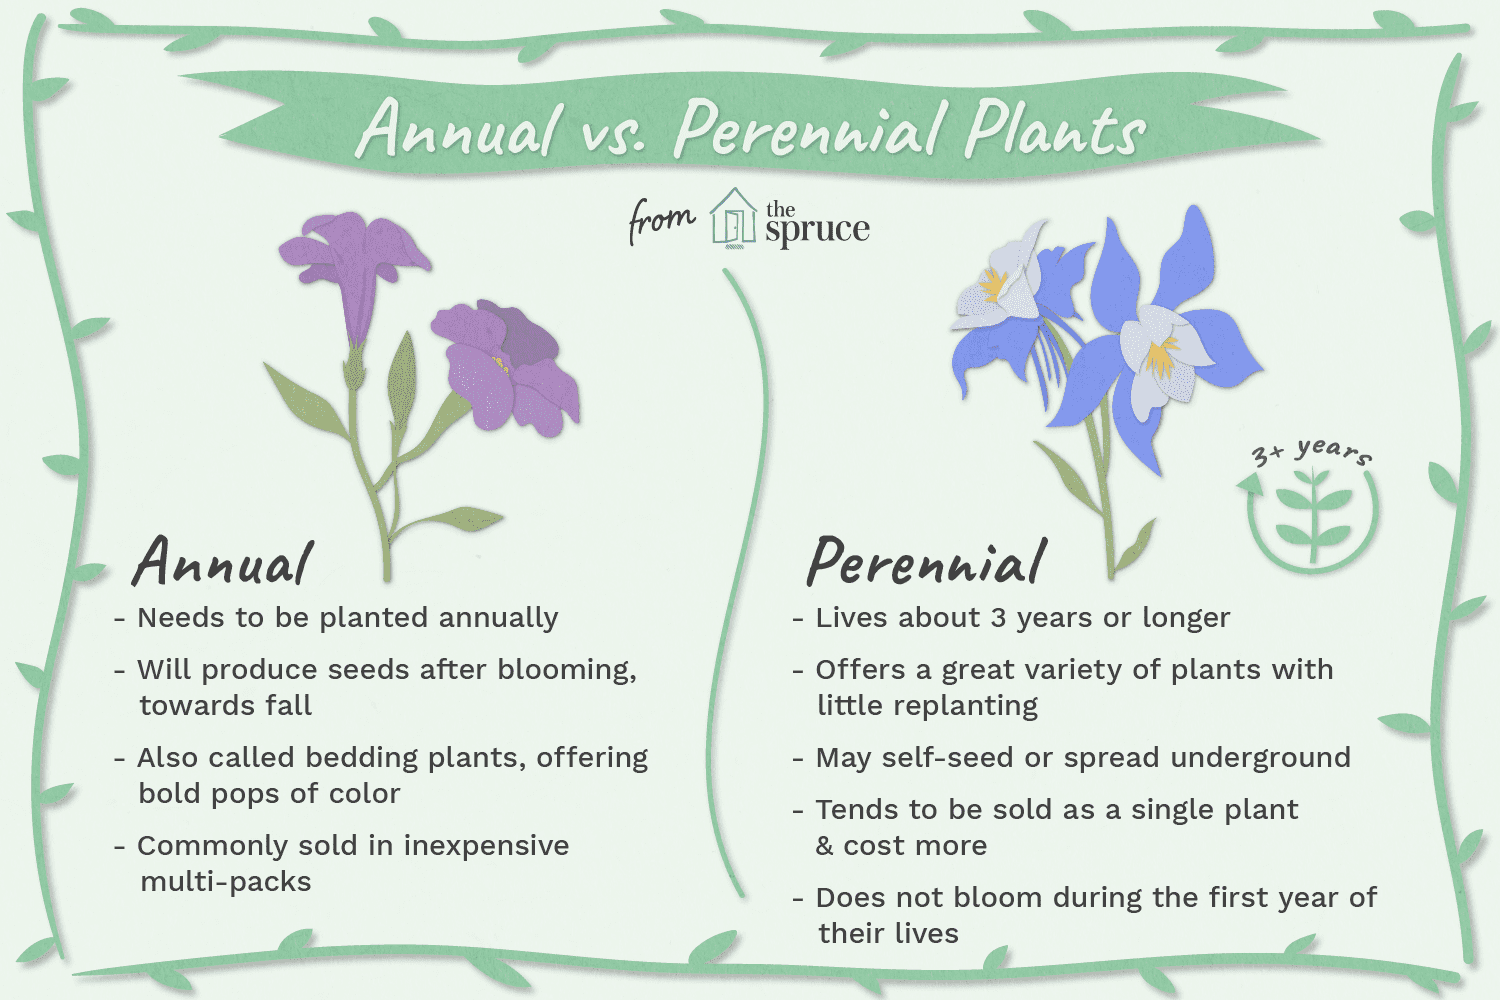 Annual Vs Perennial Plants